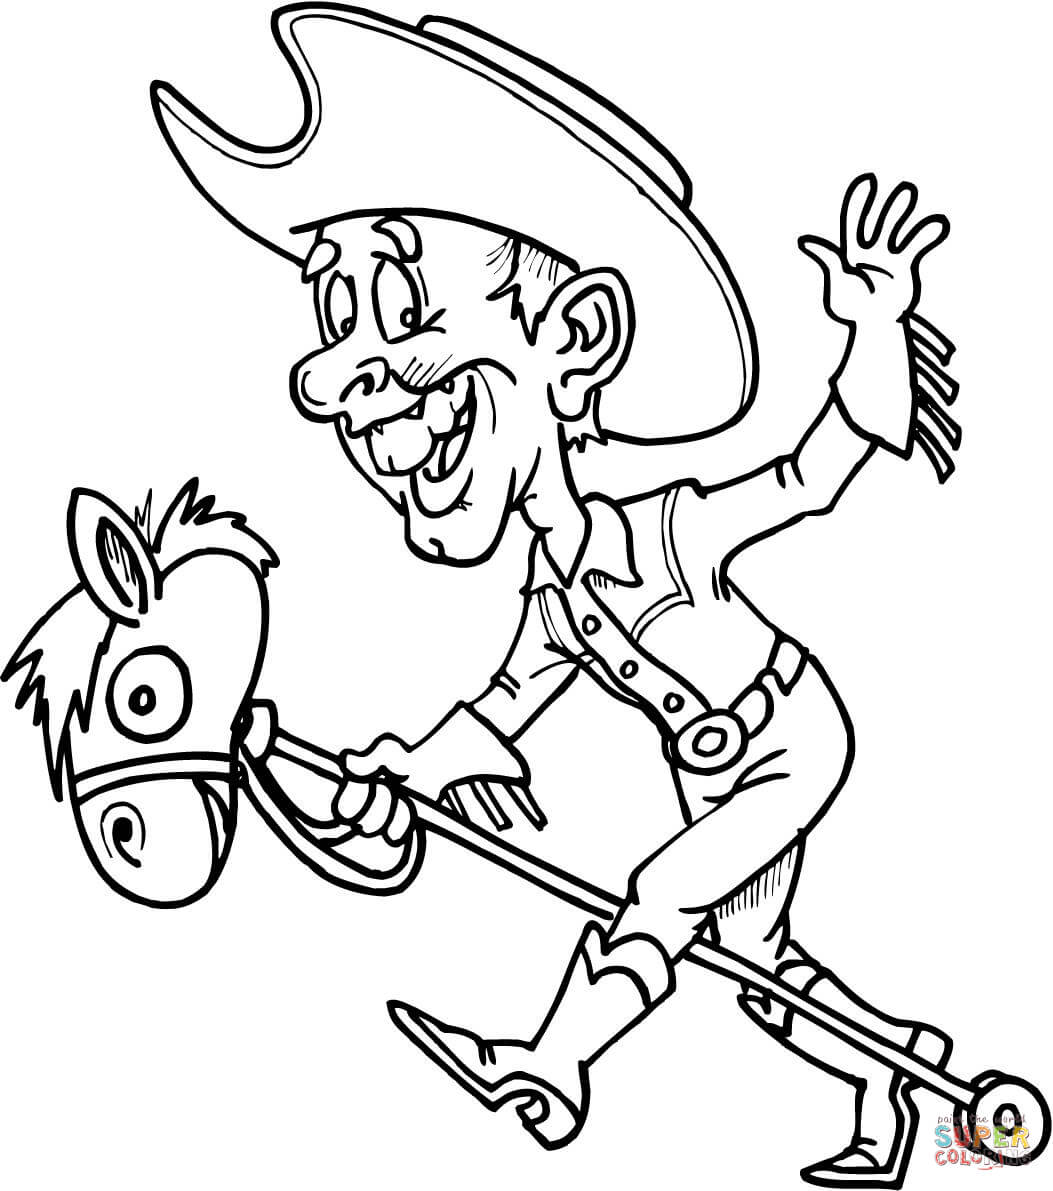 Western Theme Coloring Pages At Getcolorings